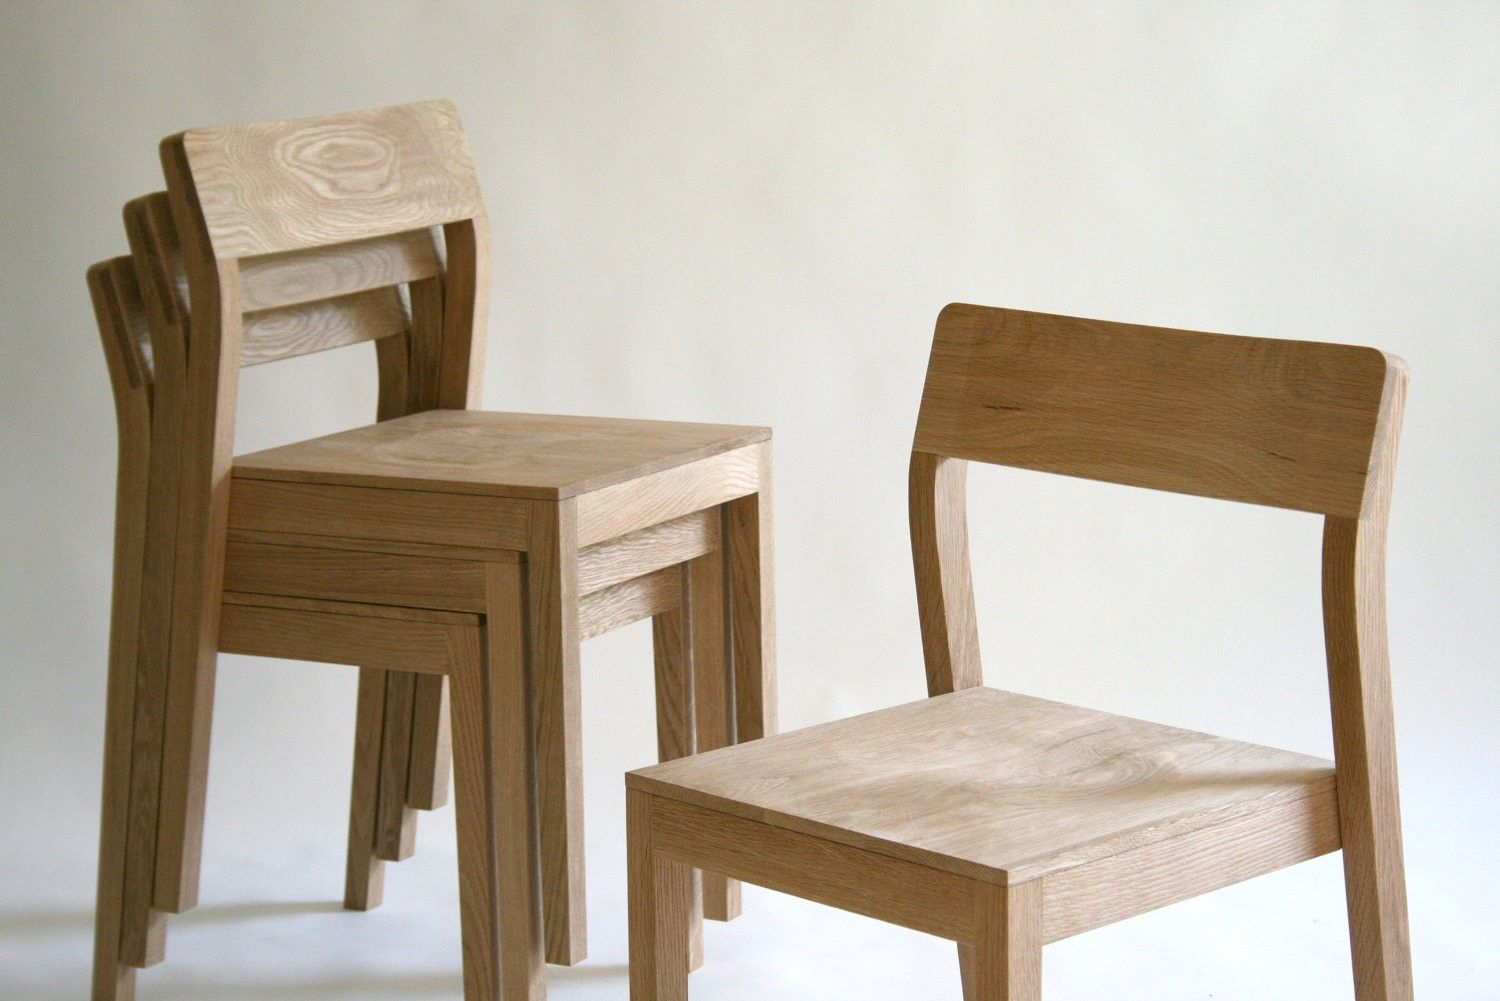 Hand made stackable wood dining chair by kapel designs for Dining chair design ideas